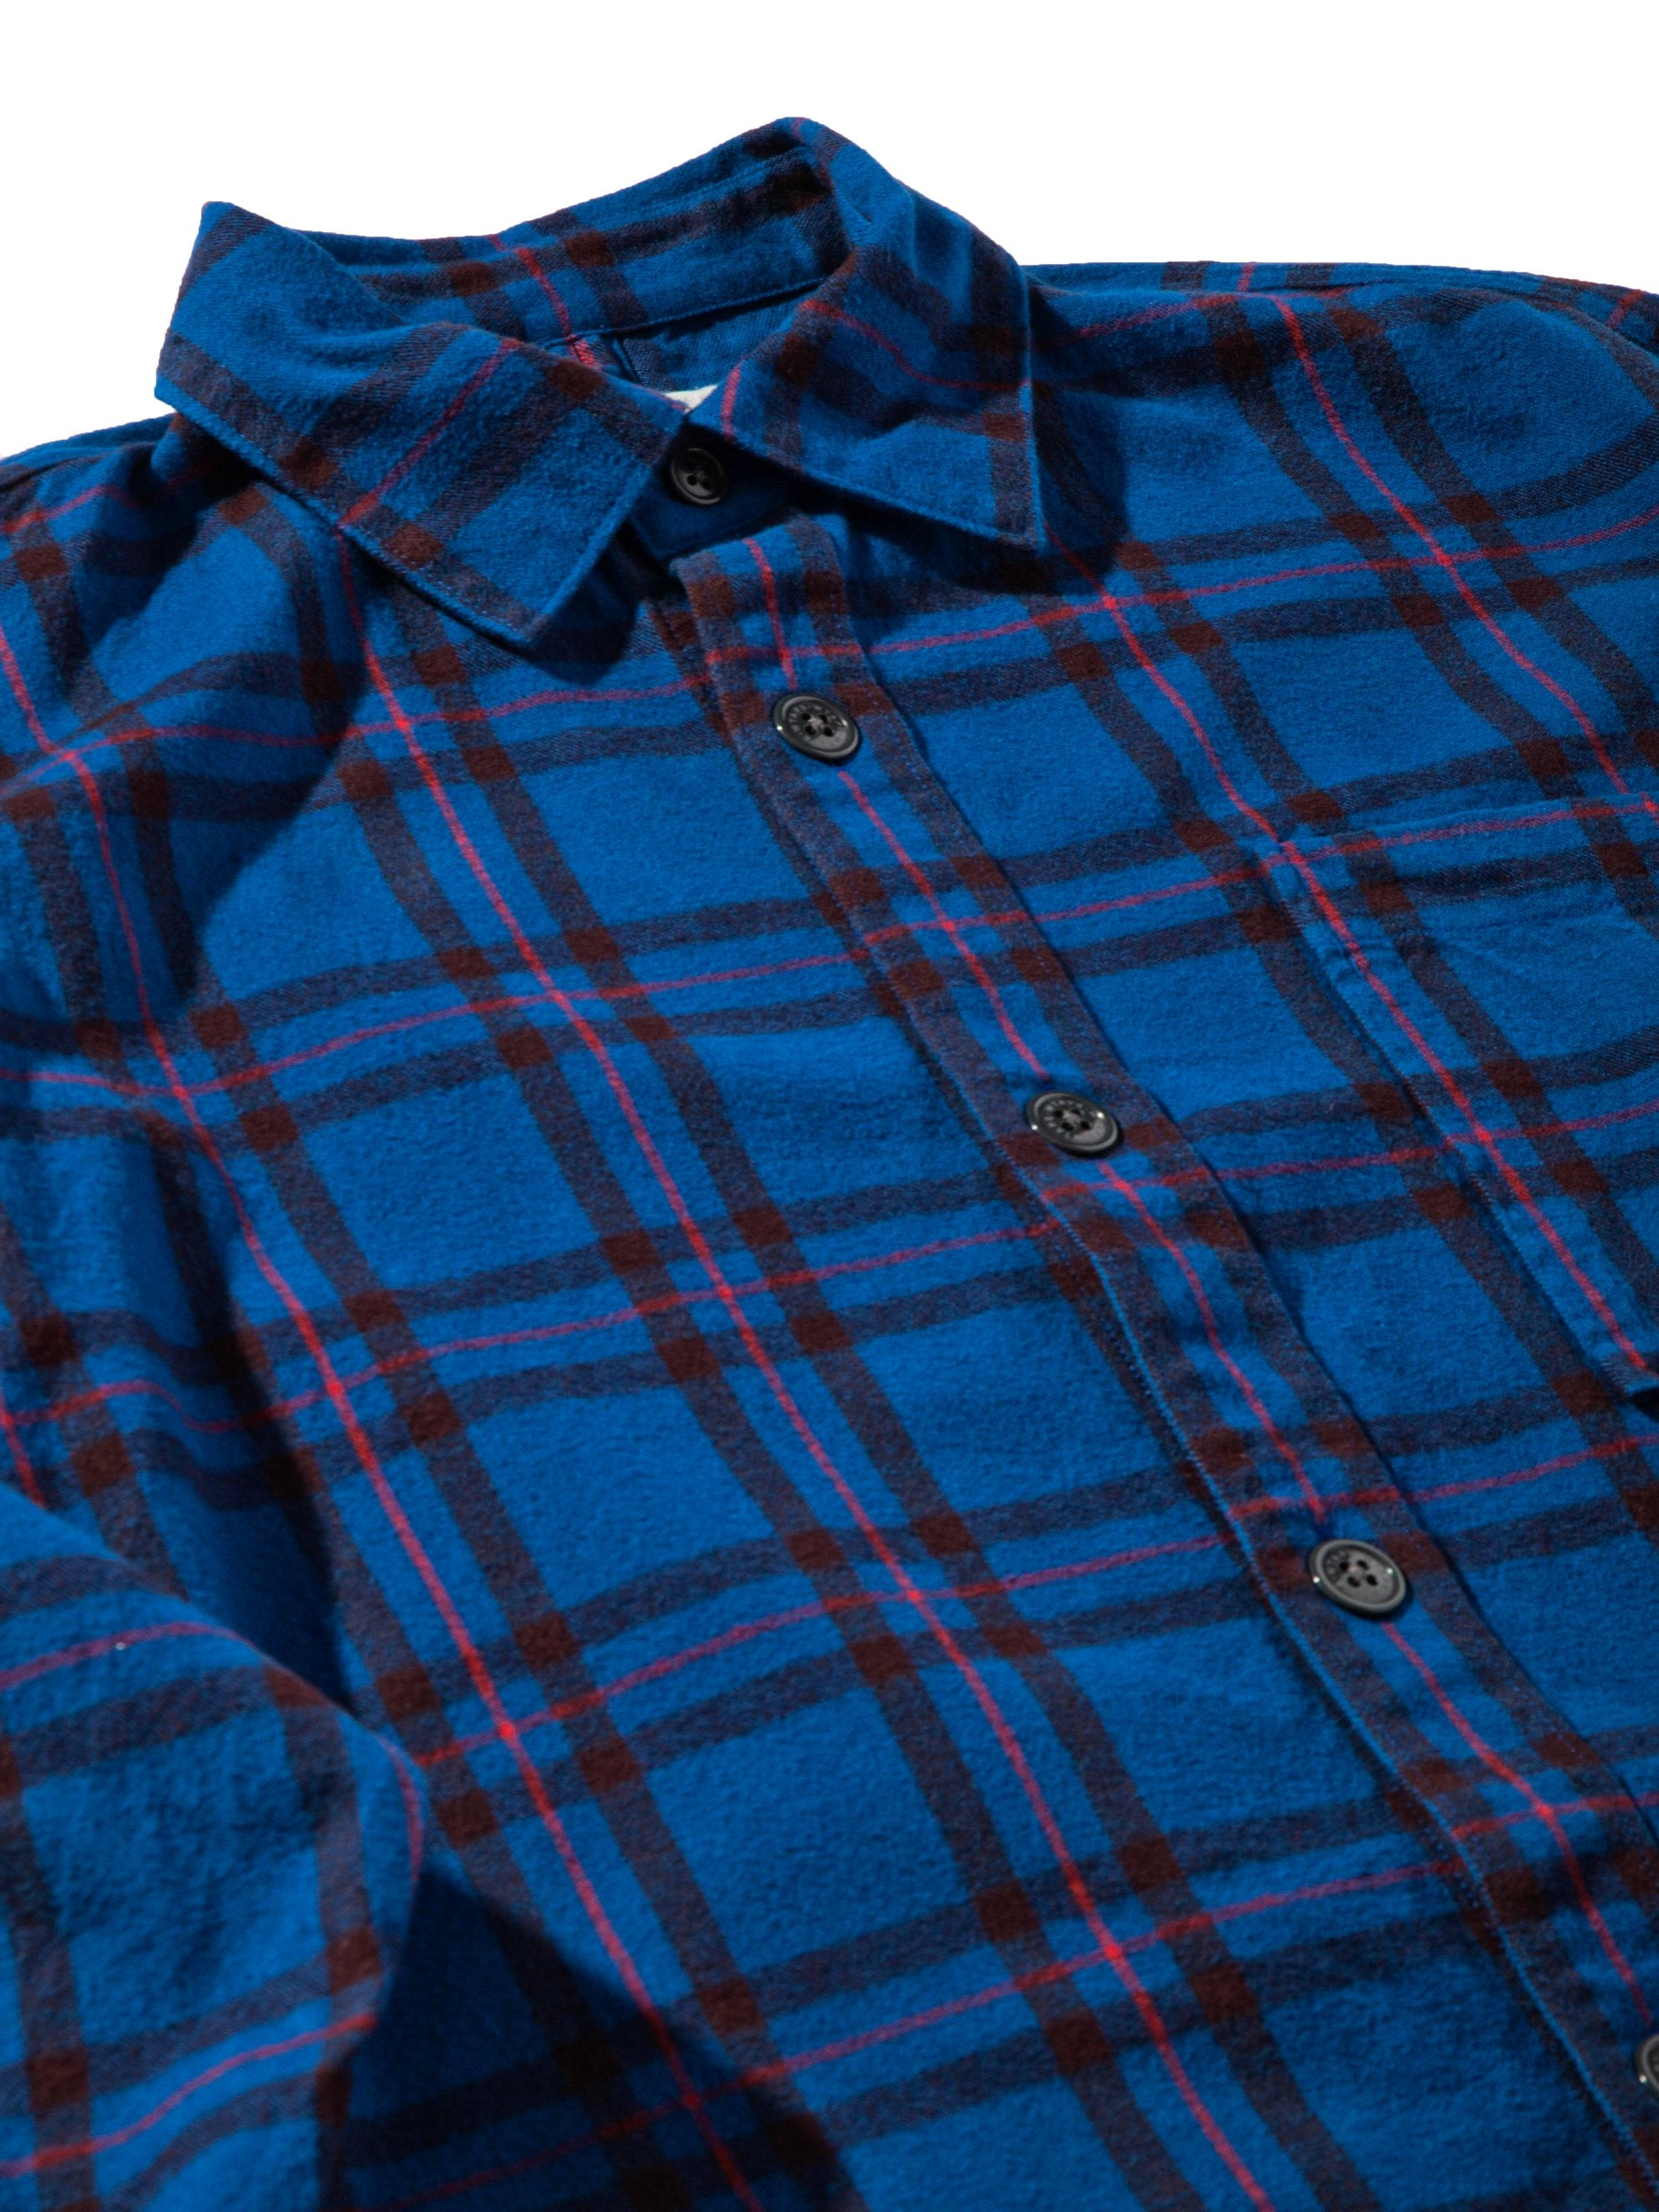 Blue Frock LS Shirt 7